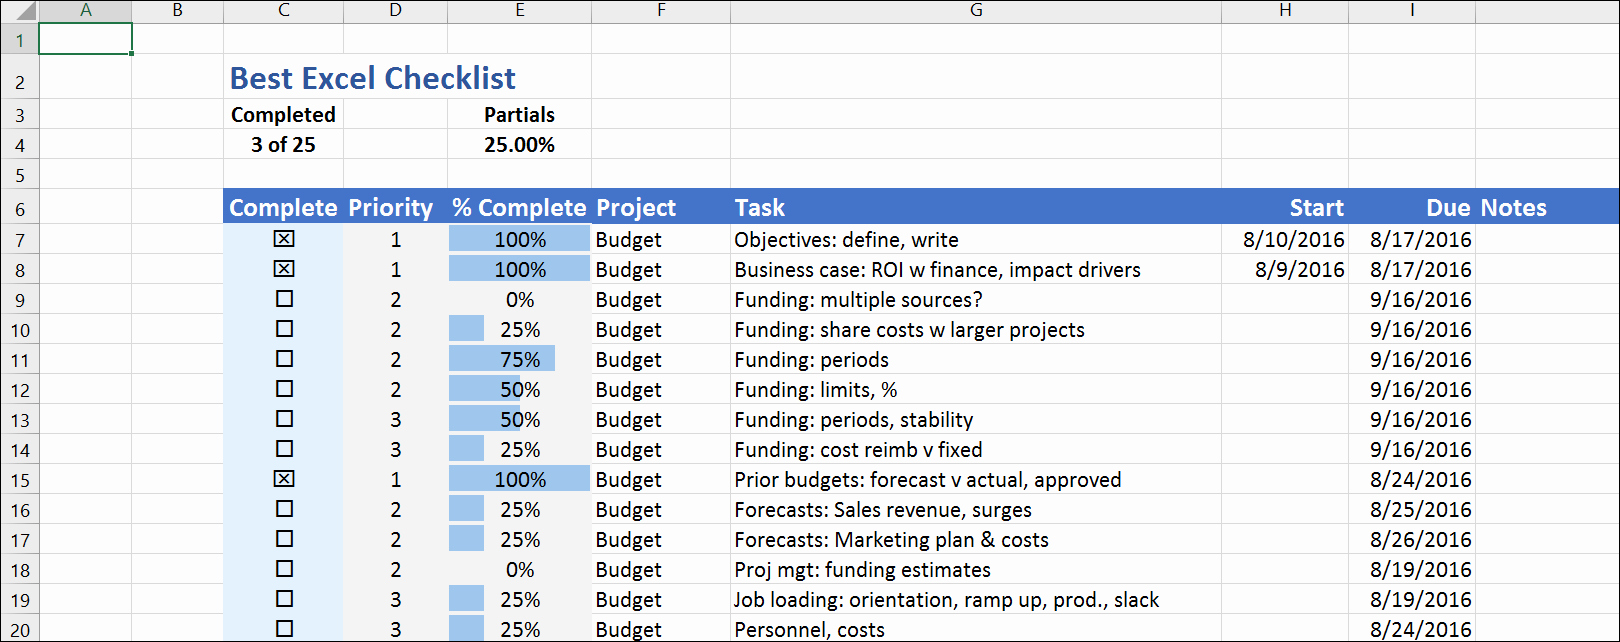 Construction Checklist Template Excel Best Of the Best Excel Checklist